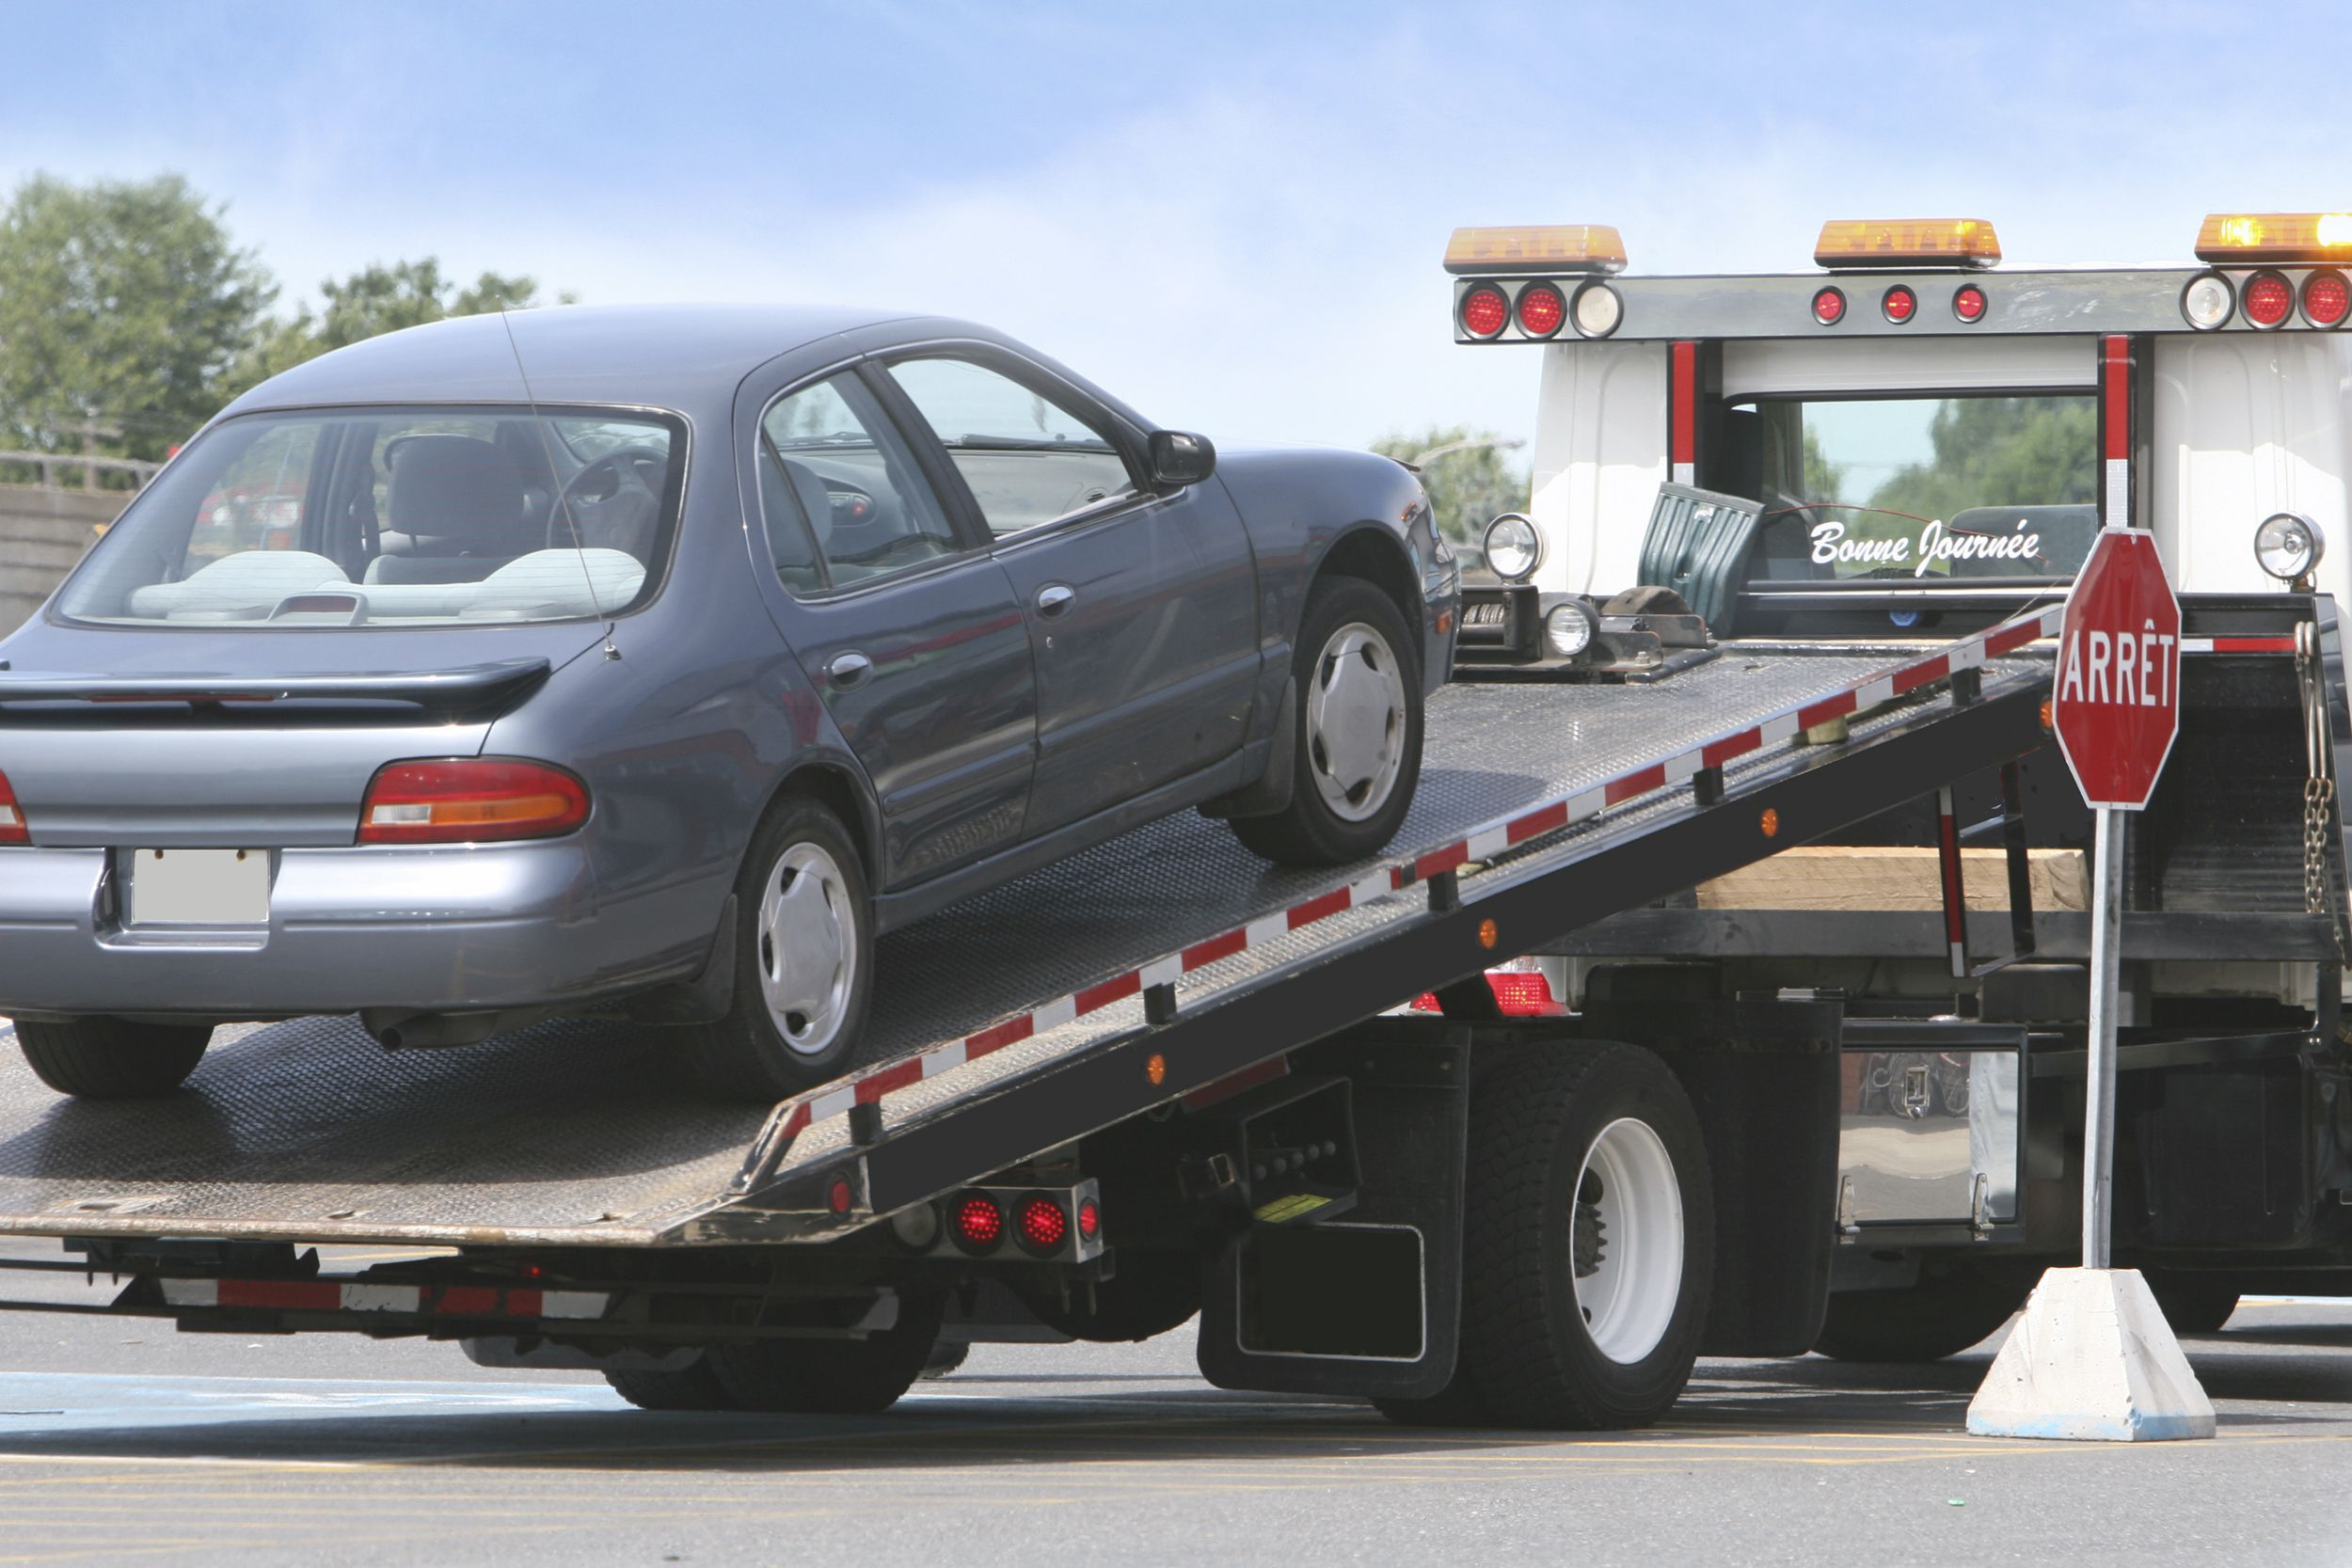 Impound Cars for Sale Near Me Awesome How Repossession Works when the Bank Takes Your Car